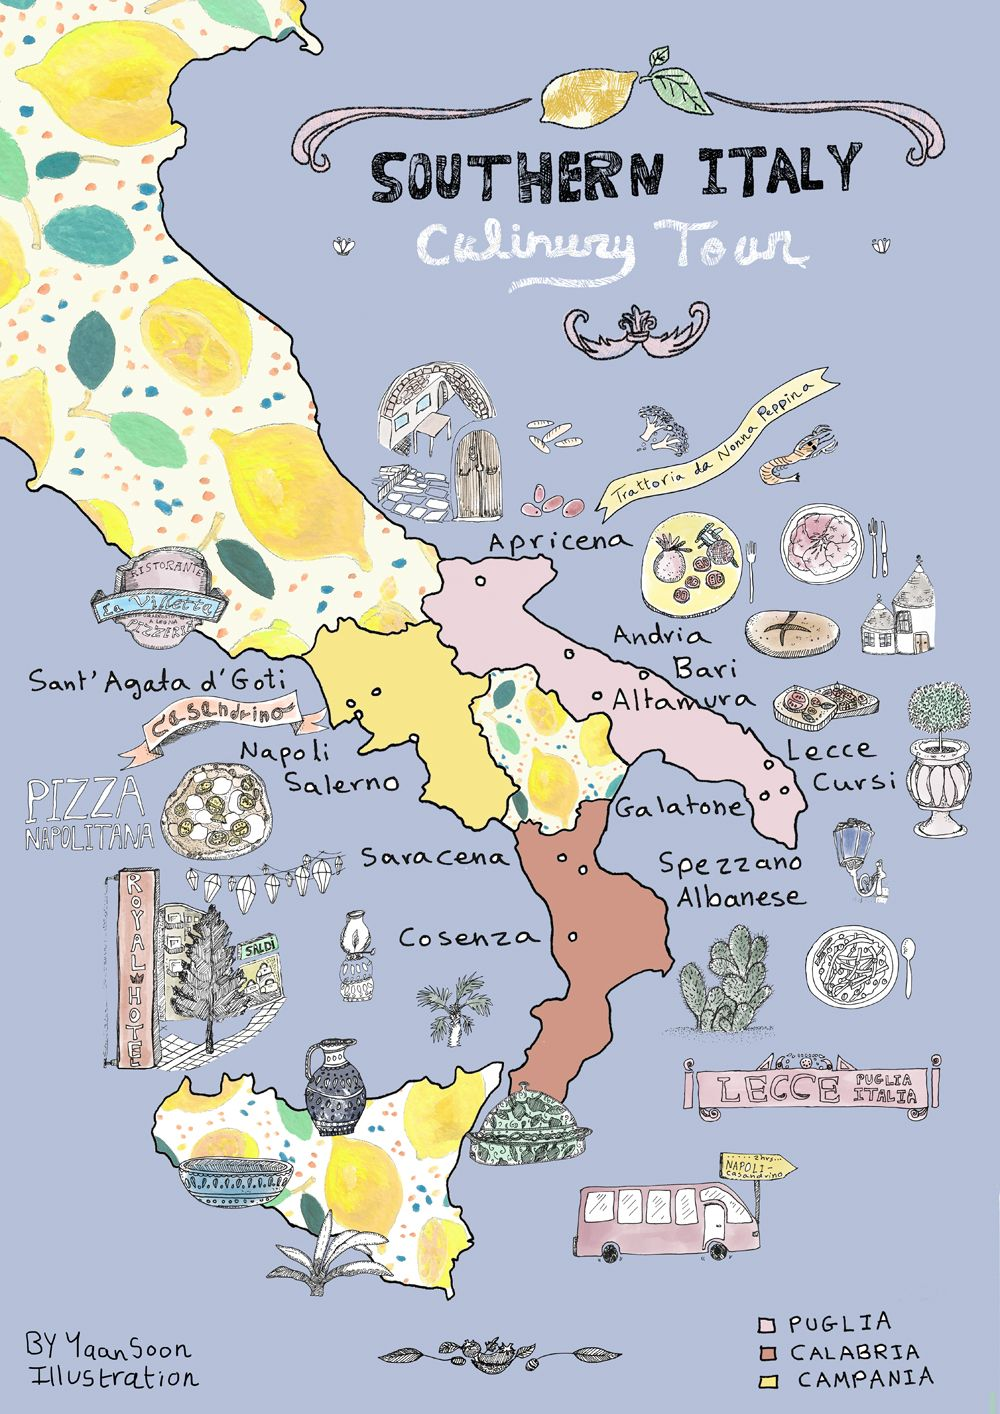 Southern Italy Map Italy Culinary Tour: Southern Italy Illustrated Map | Yaansoon